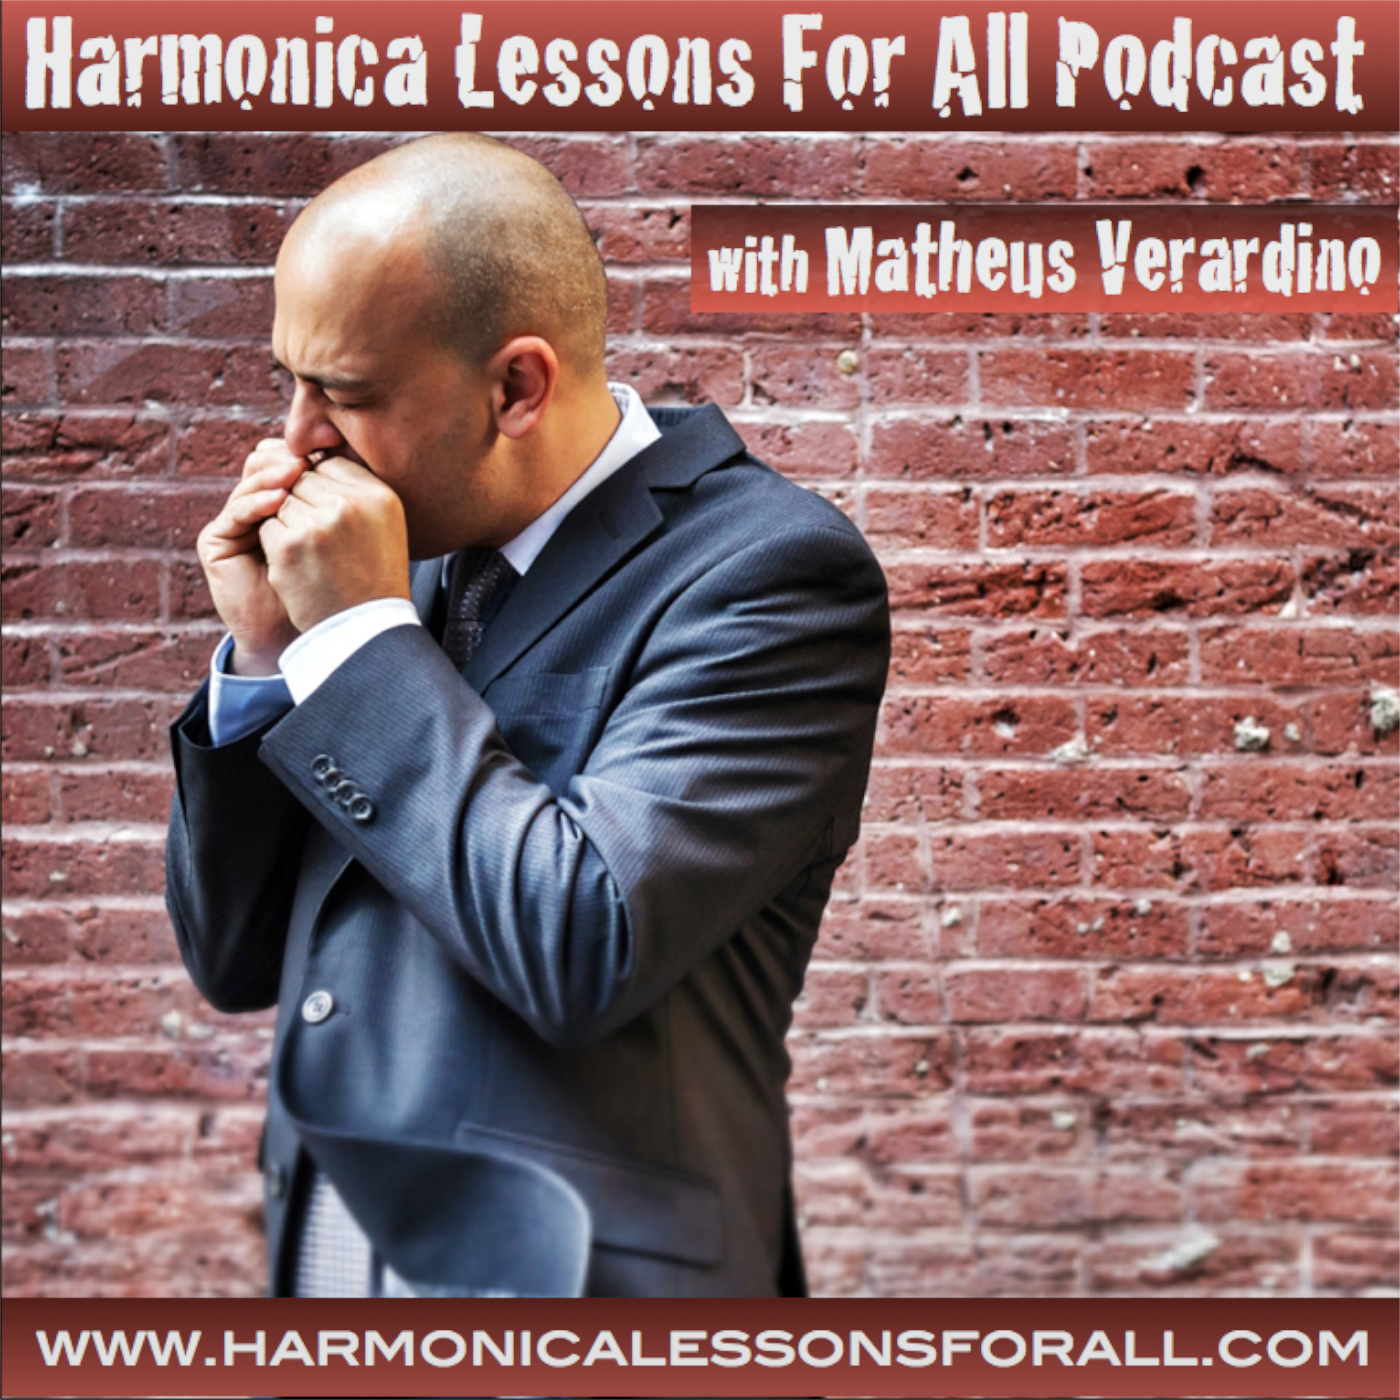 Harmonica Lessons For All with Matheus Verardino